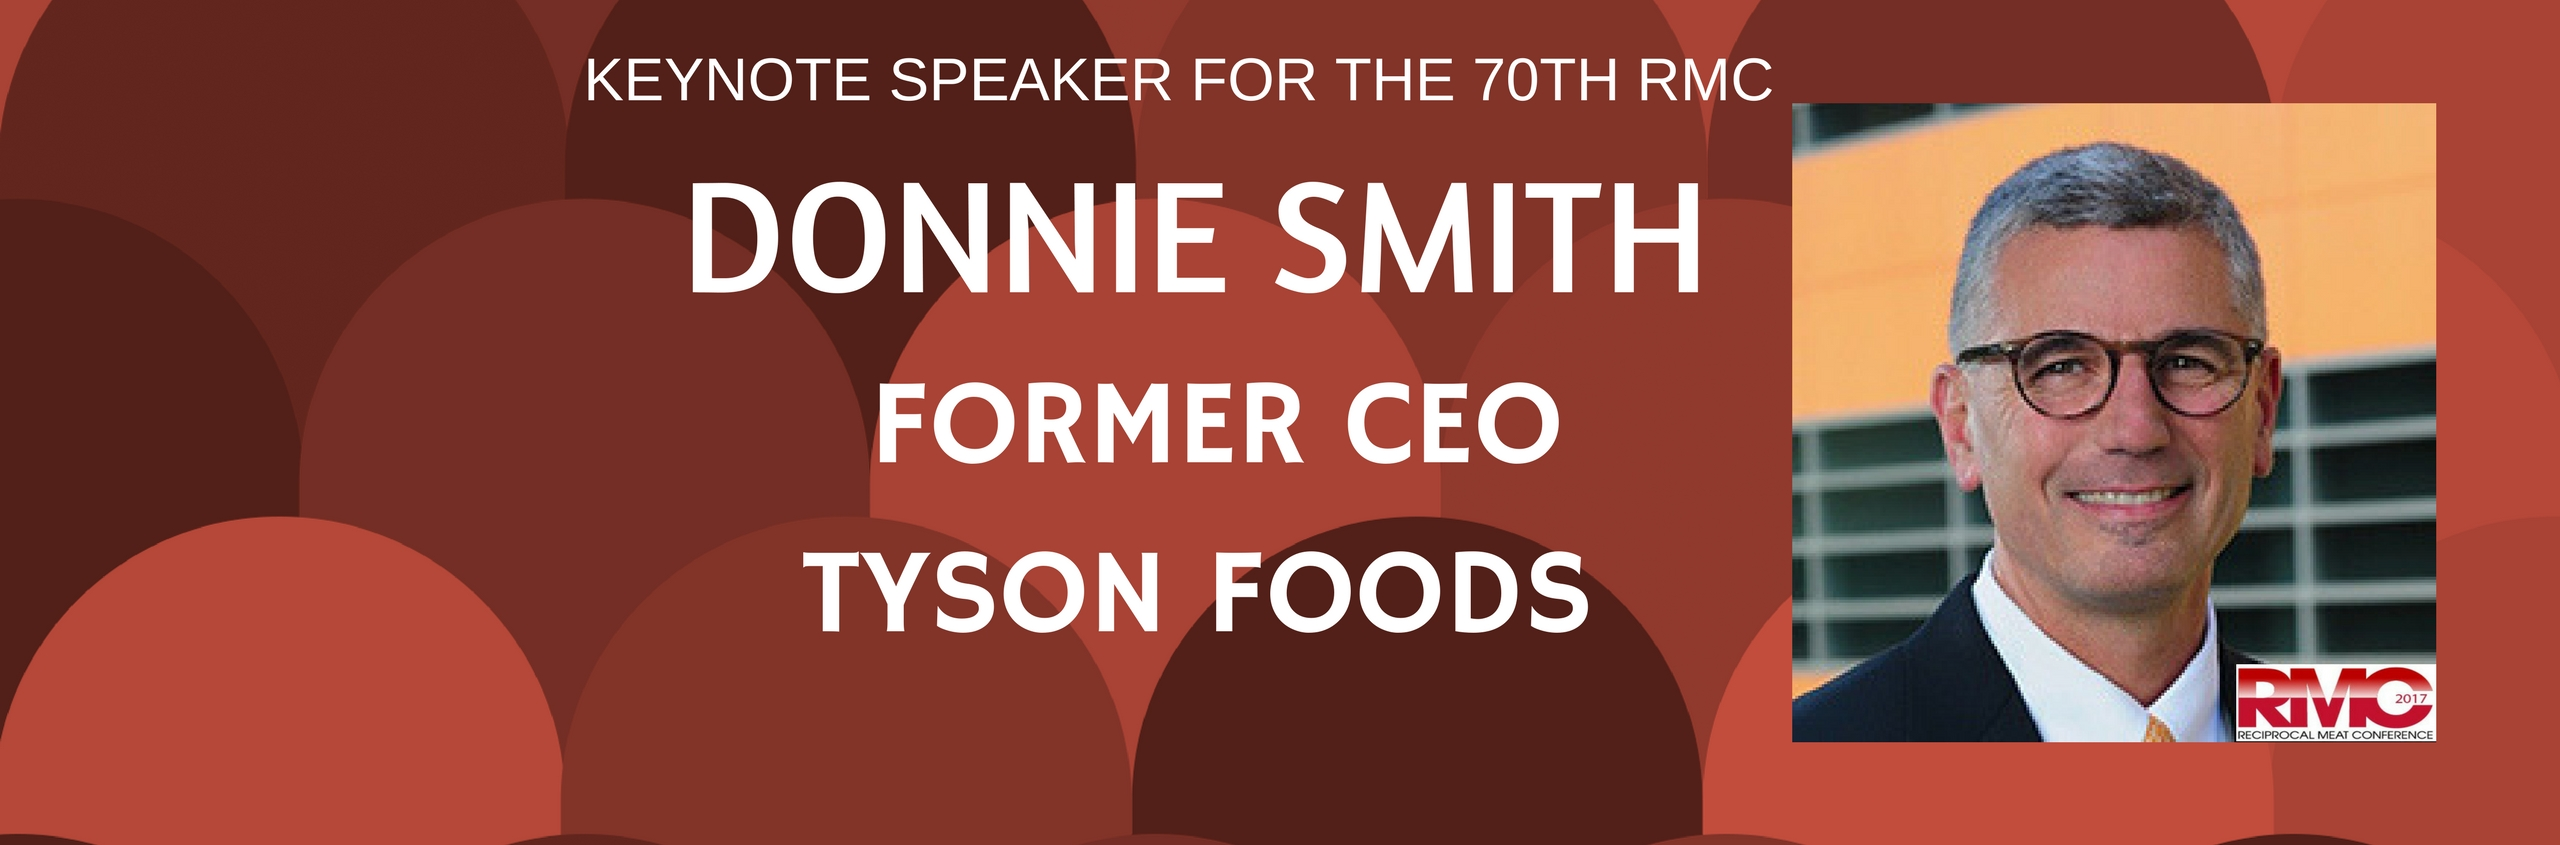 Keynote Speaker Announced For RMC!